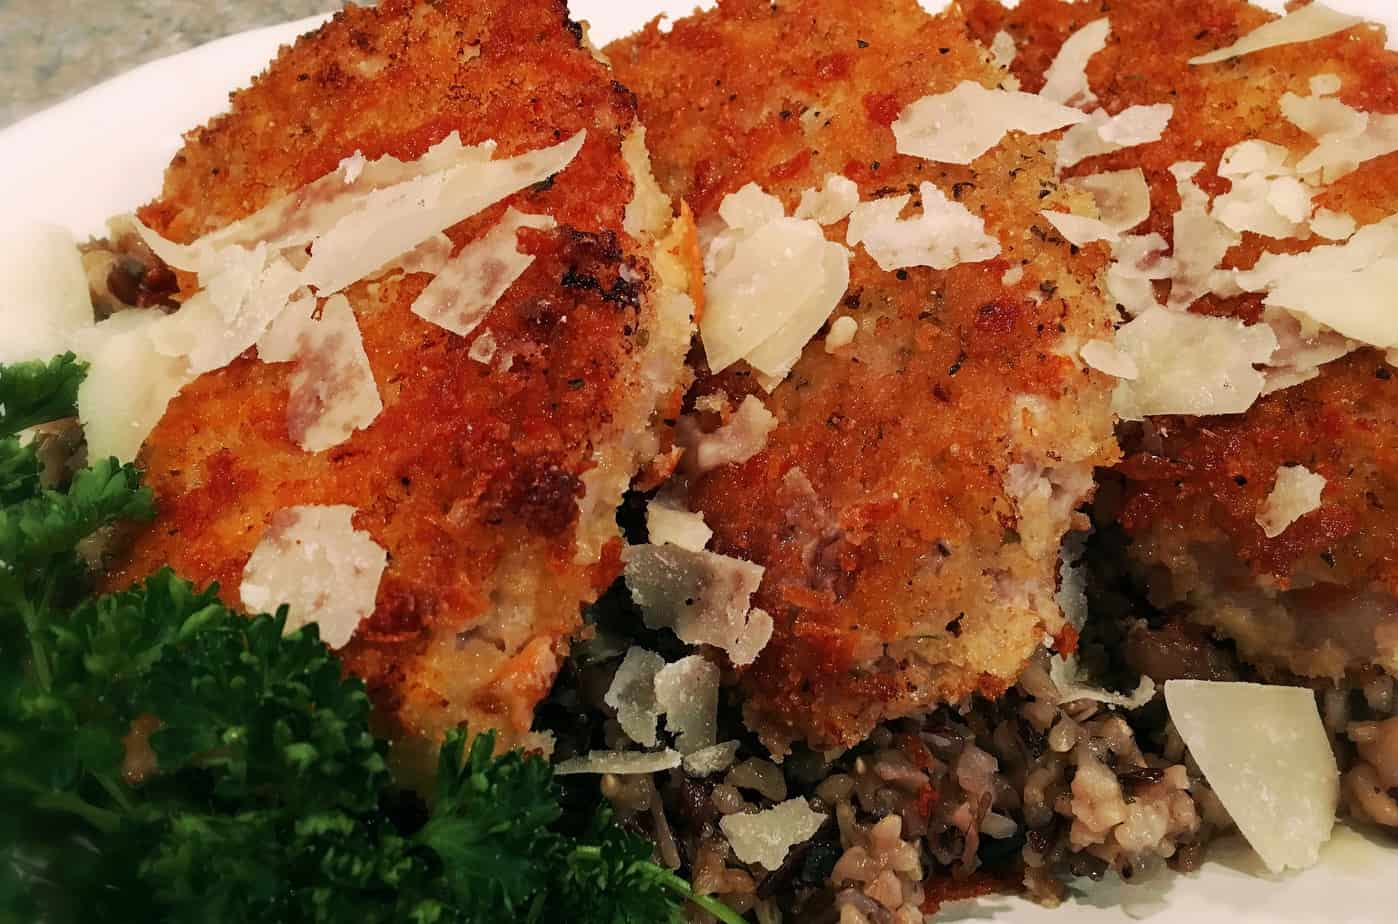 Paremsan Crusted Pork Chops on a bed of Wild Rice and sprinkled with Parmesan Cheese Flakes.